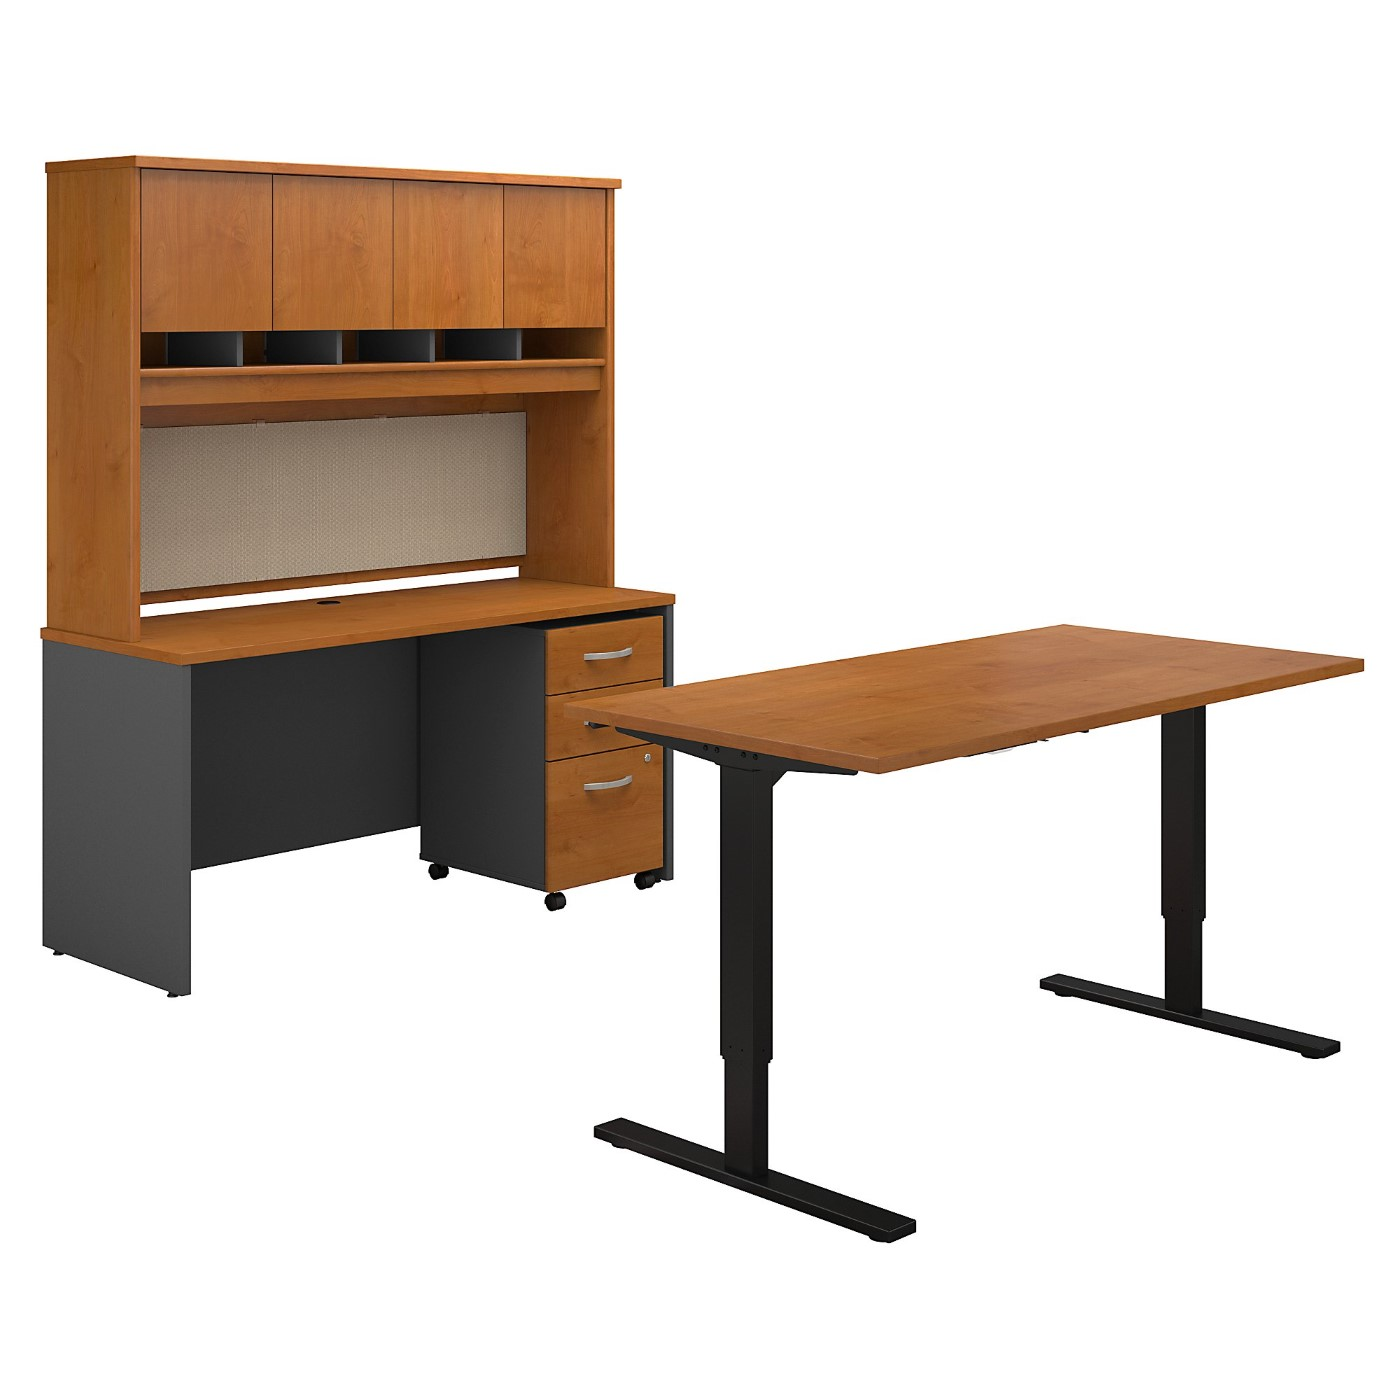 BUSH BUSINESS FURNITURE SERIES C 60W HEIGHT ADJUSTABLE STANDING DESK, CREDENZA, HUTCH AND STORAGE. FREE SHIPPING